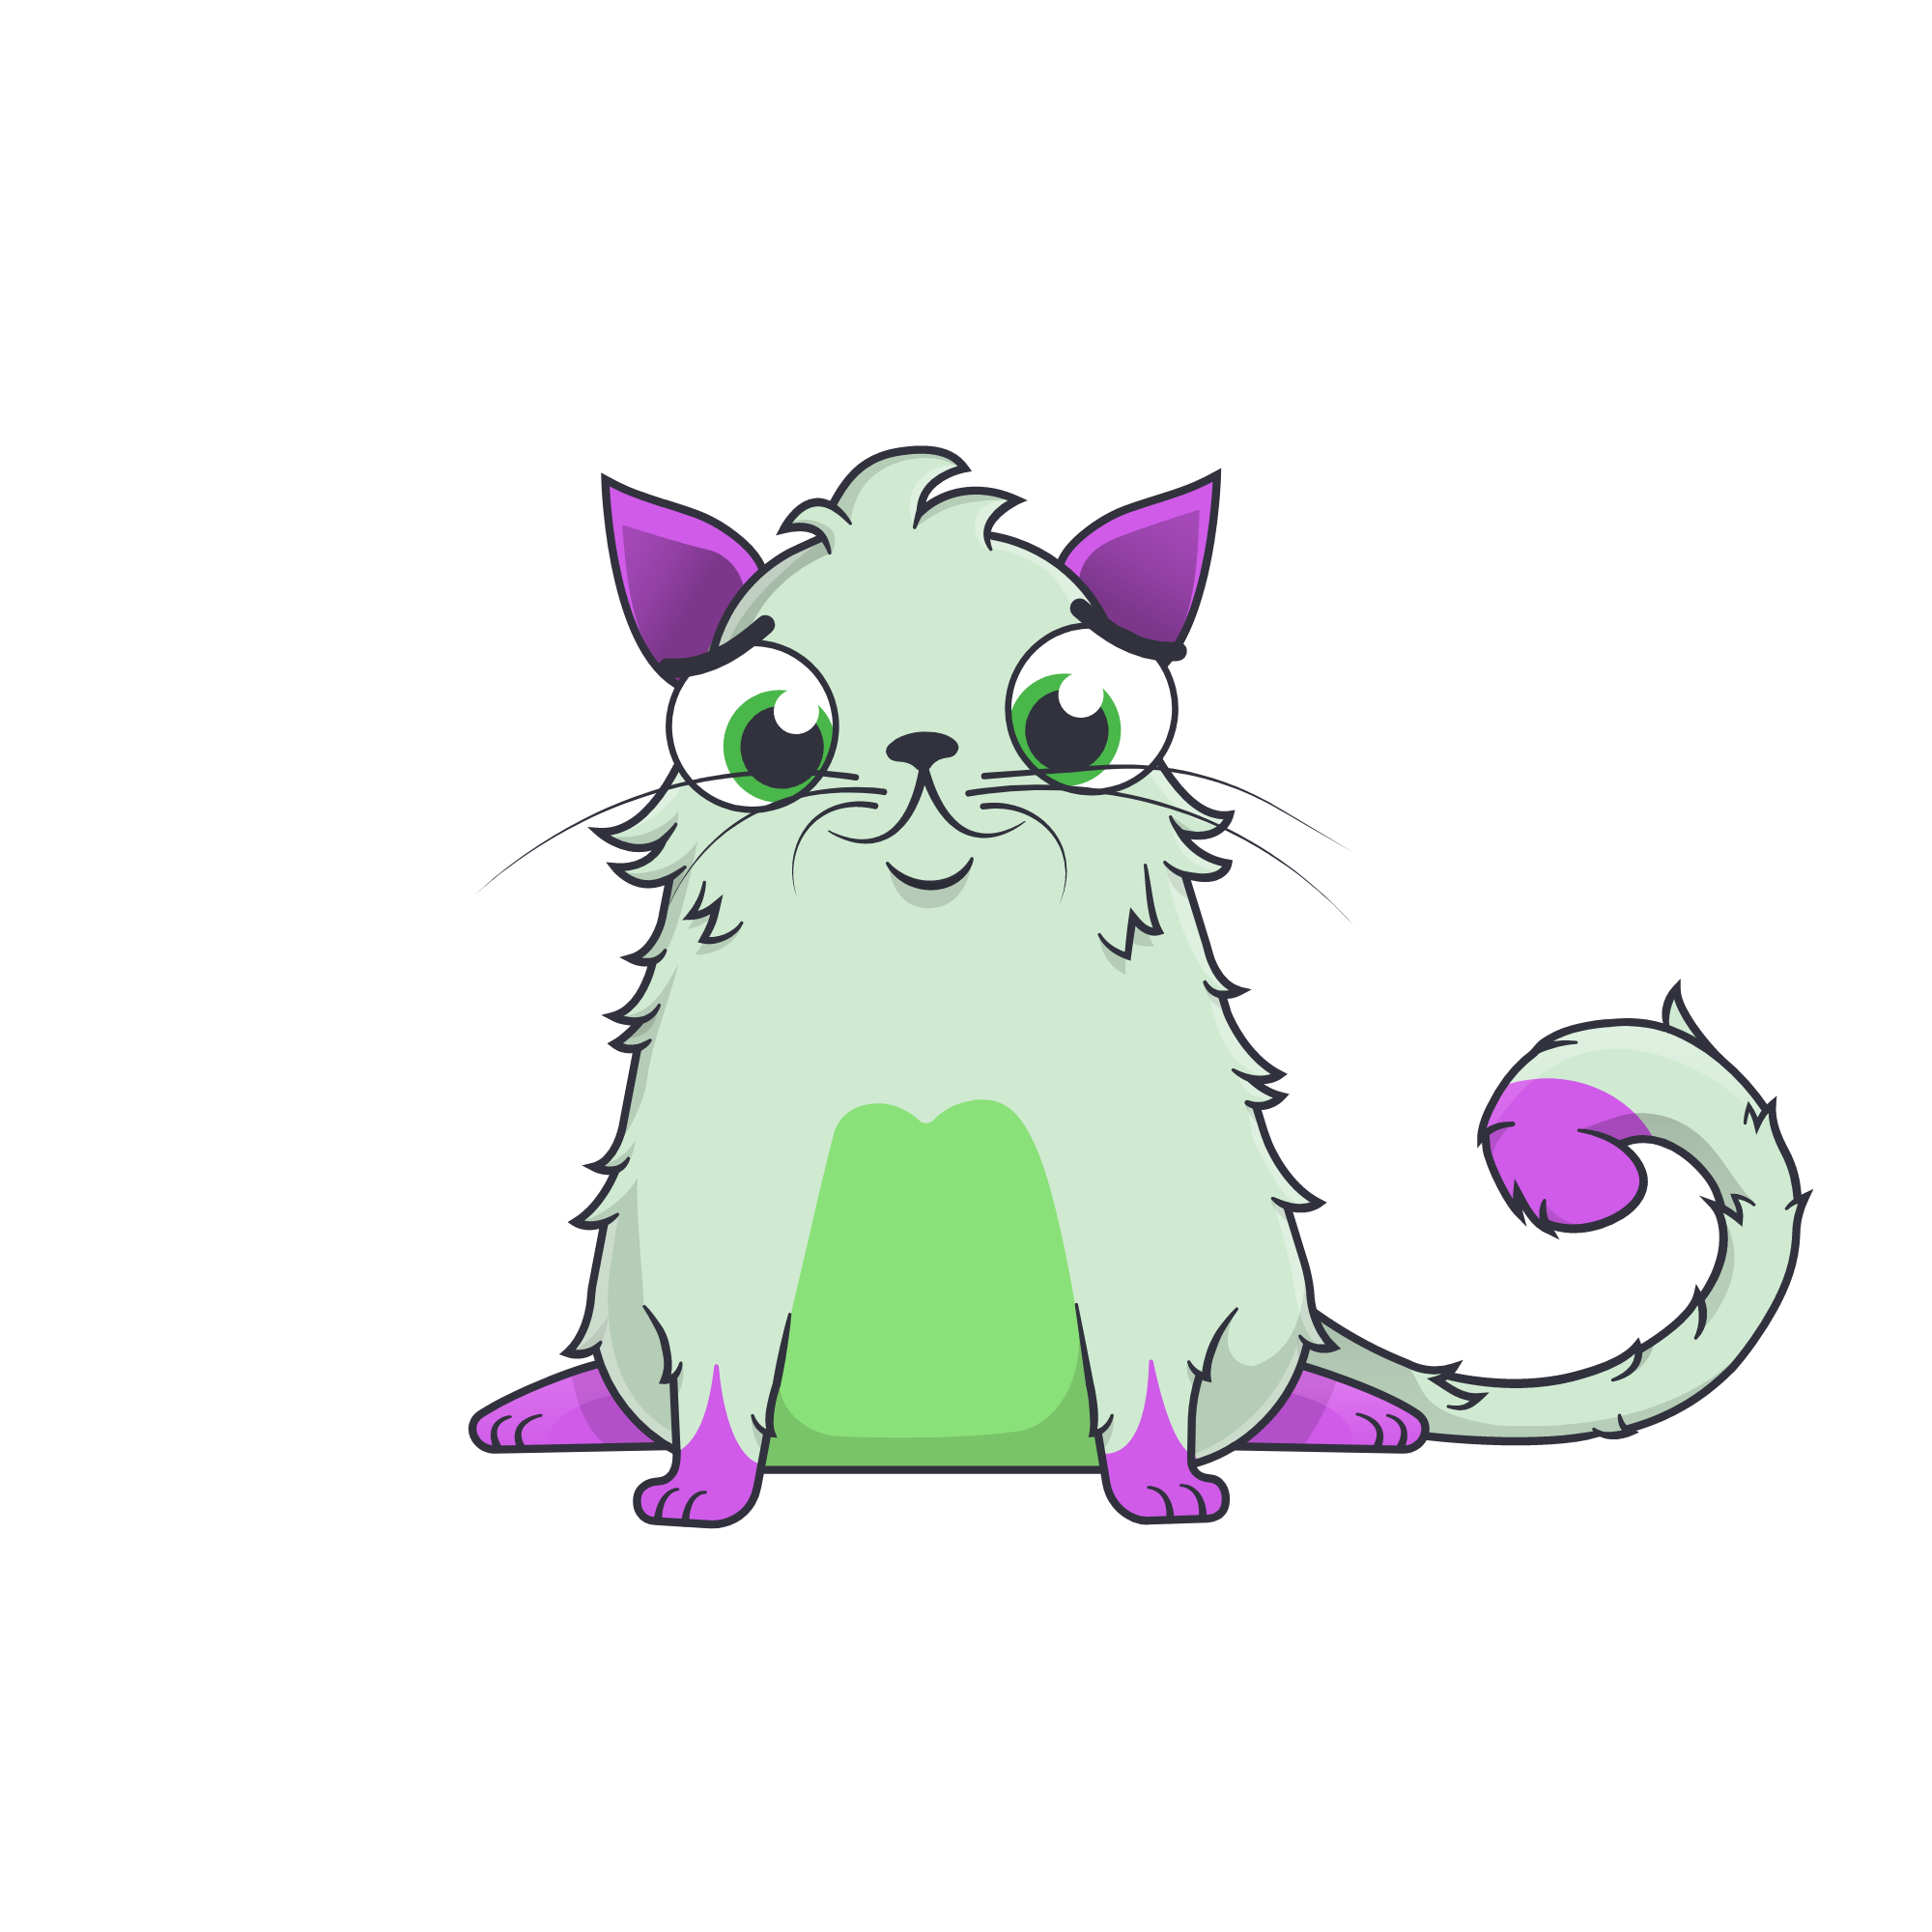 cryptokitty #1951130